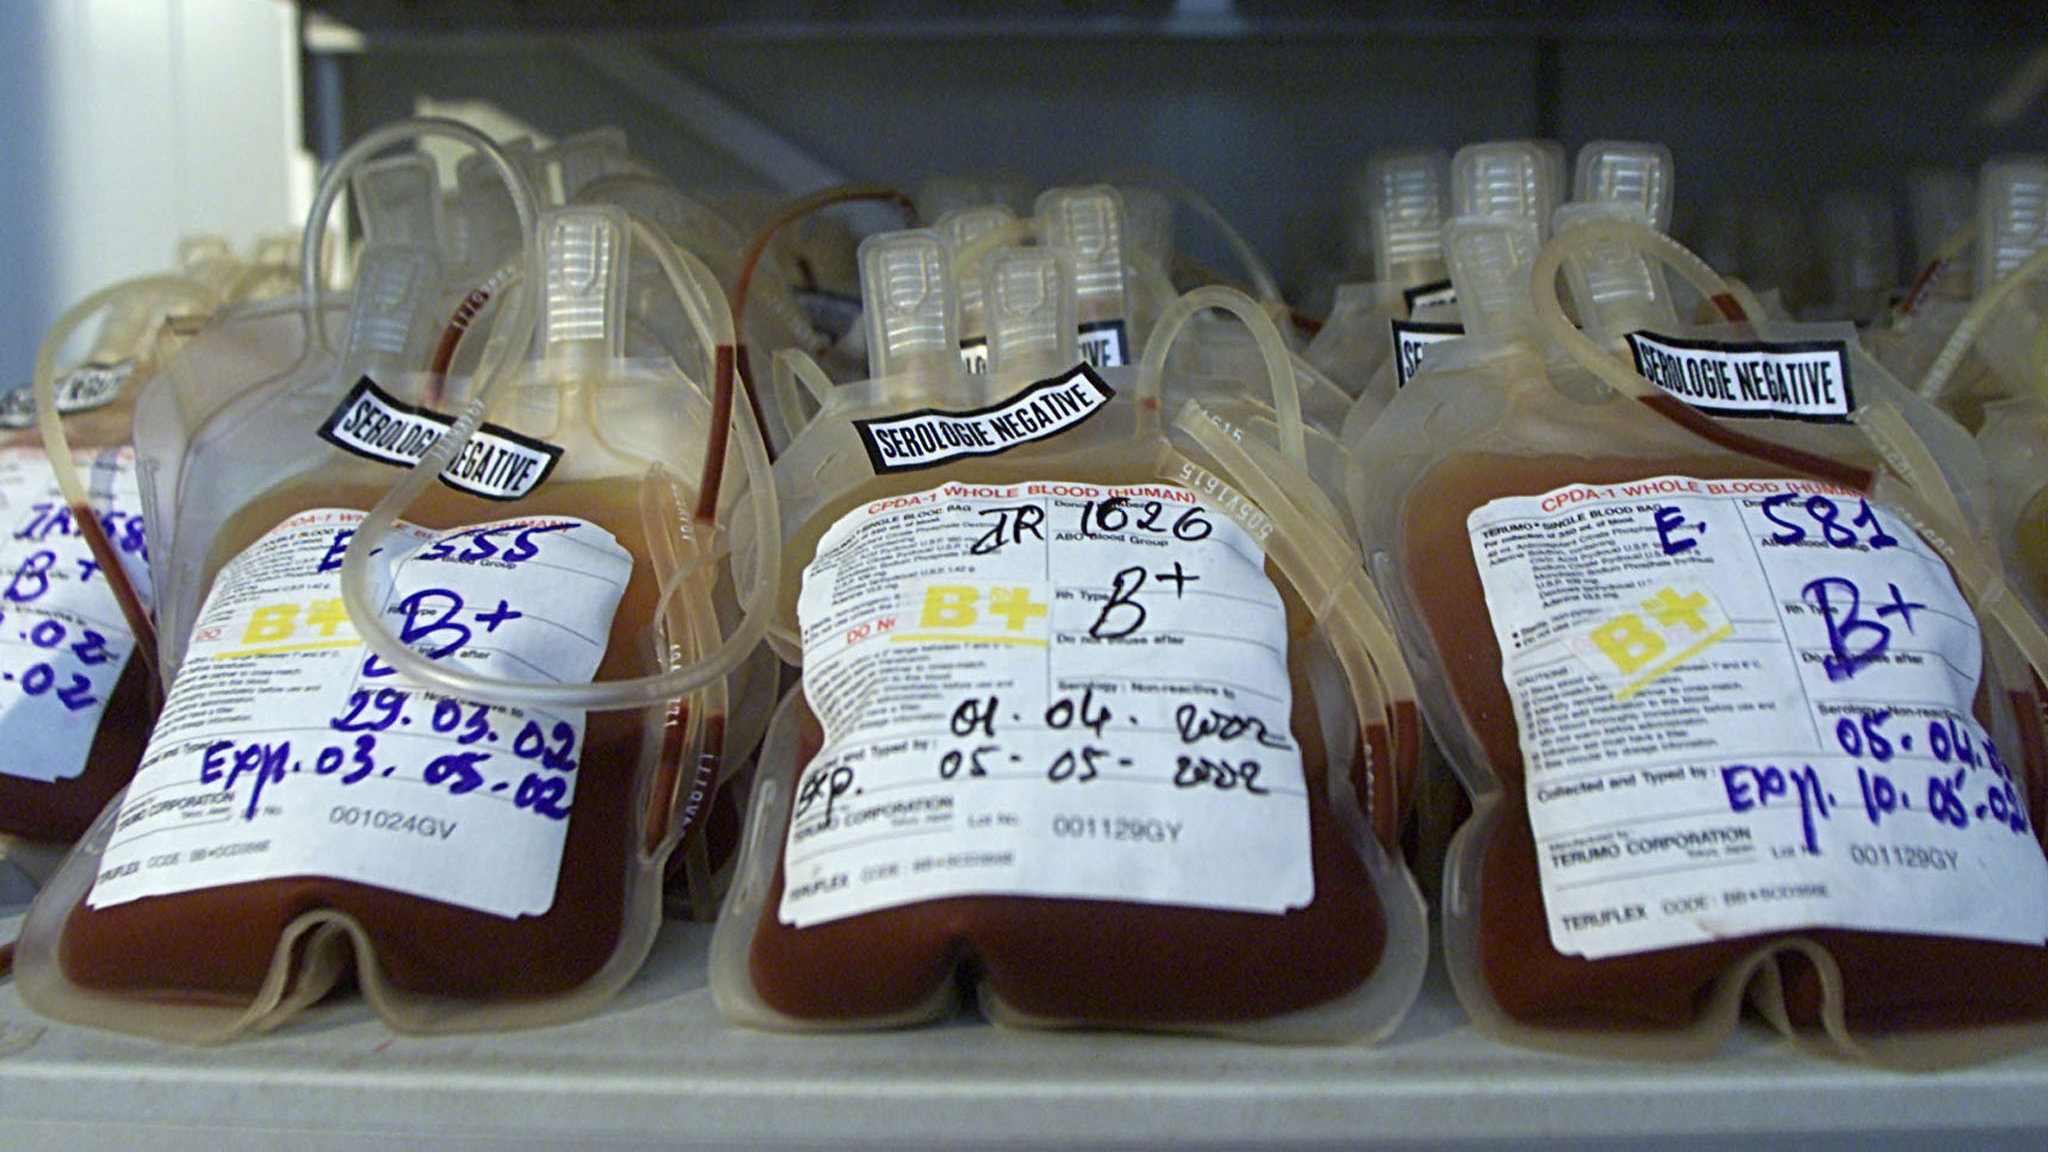 Bags of donated blood in cold storage at the National Blood Transfusion Center in the Cambodian capital Phnom Penh on 27 April,2002. Cambodia's blood supply does not meet the demands of the country's population. The blood shortage has led to a thriving blood-for-money business in the city. Many destitute youth sell their blood for cash in Phnom Penh.